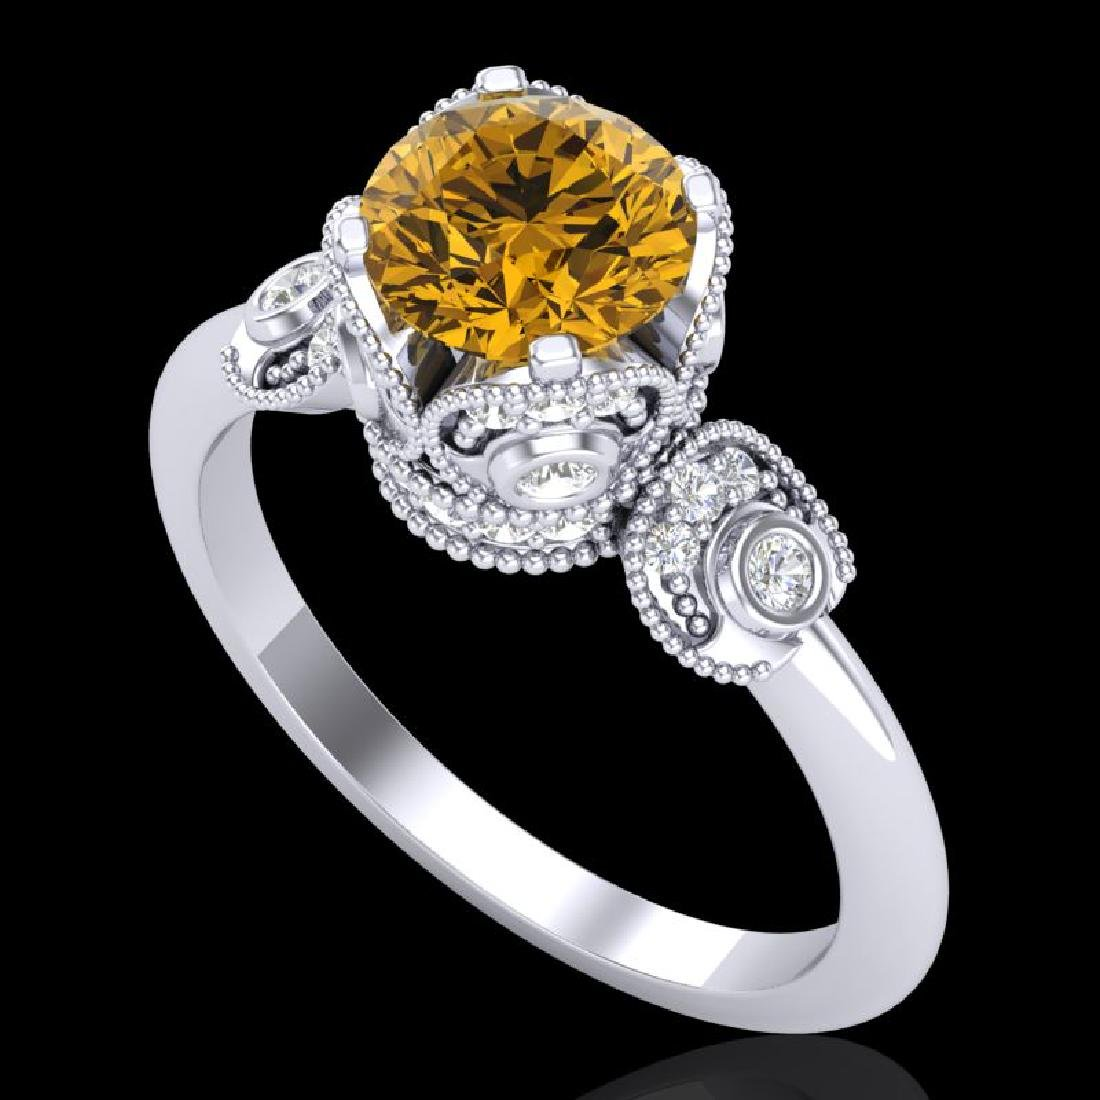 1.75 CTW Intense Fancy Yellow Diamond Engagement Art